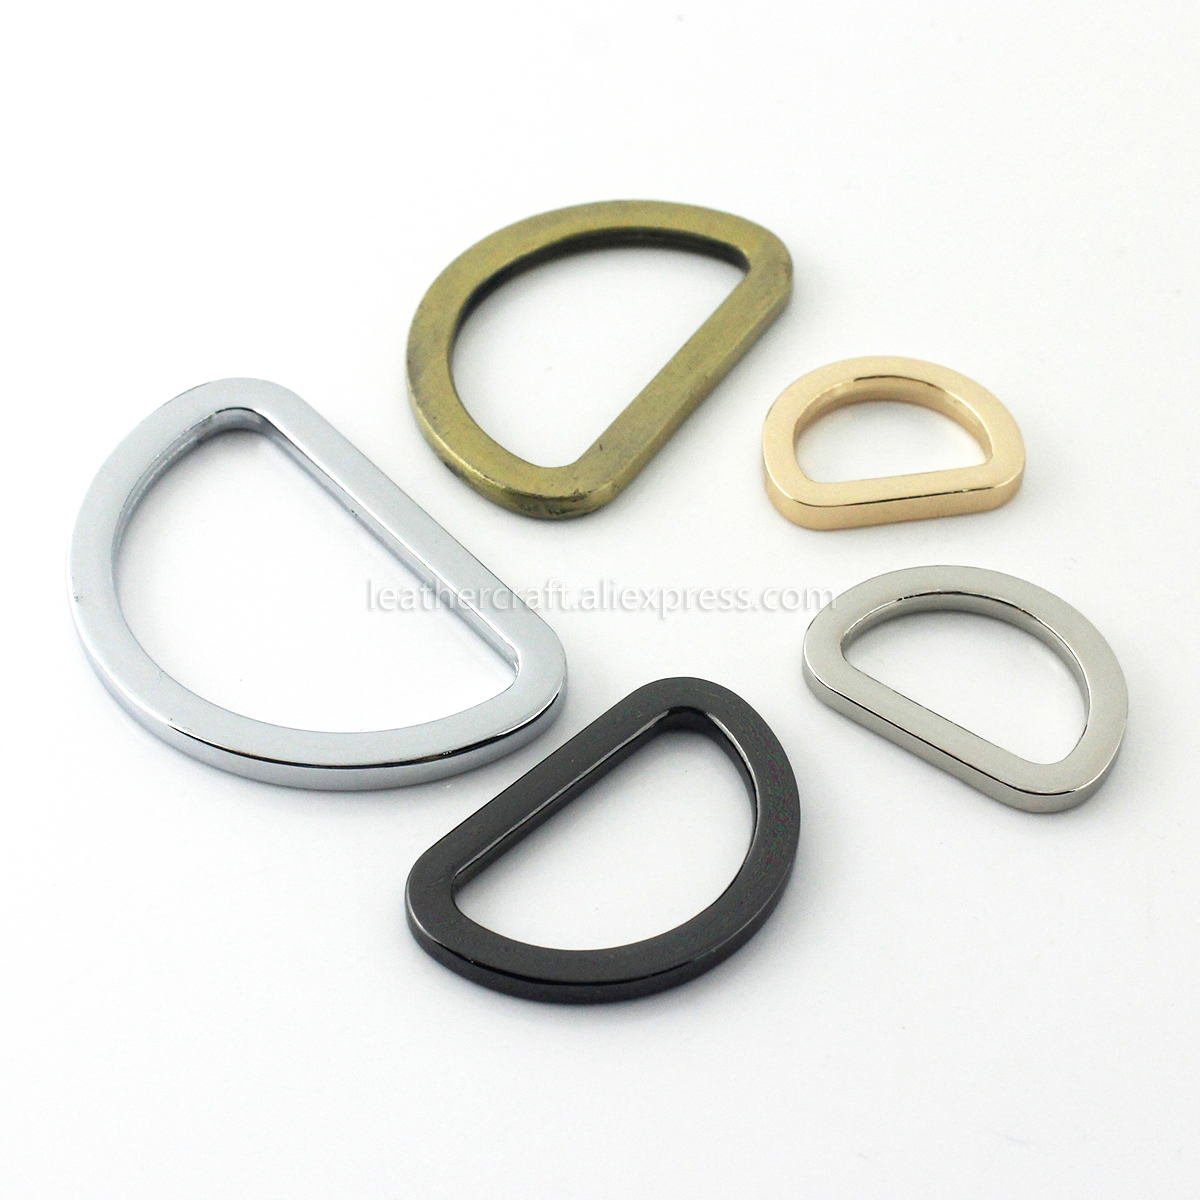 10 x 20mm antique finish metal buckle bag shoe corset leather craft belt strap{=